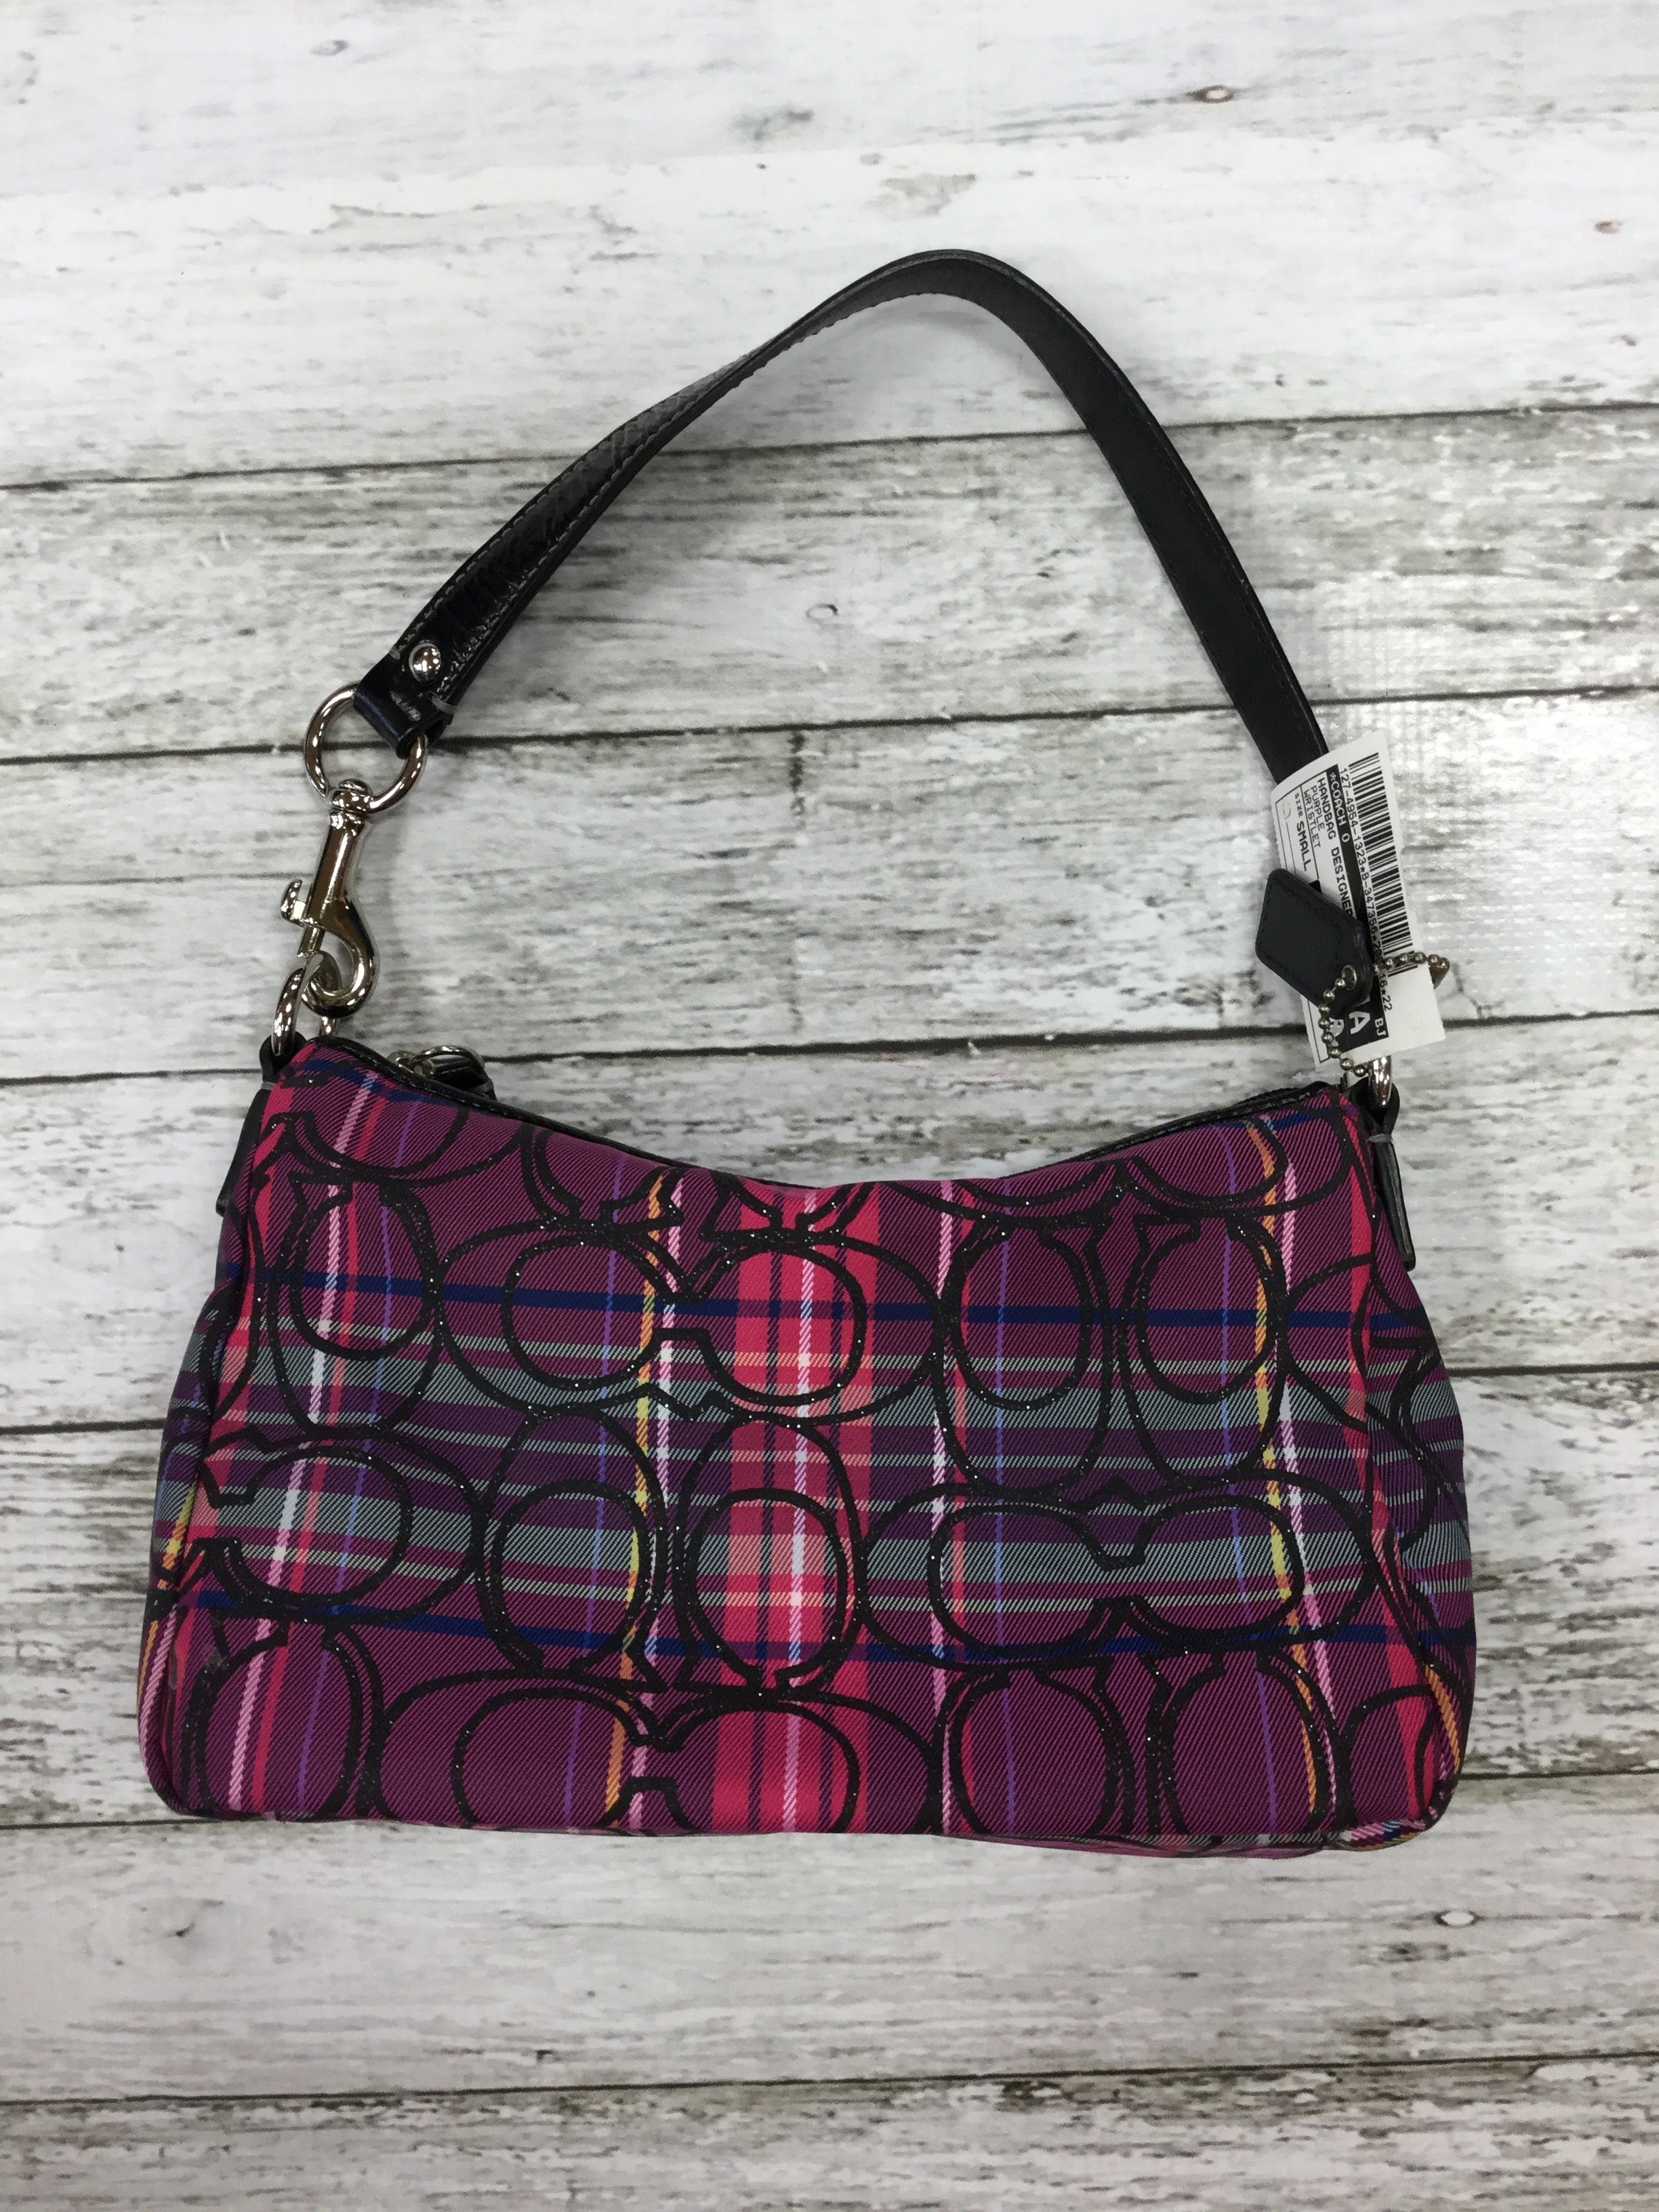 Primary Photo - BRAND: COACH O <BR>STYLE: HANDBAG DESIGNER <BR>COLOR: PURPLE <BR>SIZE: SMALL <BR>OTHER INFO: WRISTLET <BR>SKU: 127-4954-1323